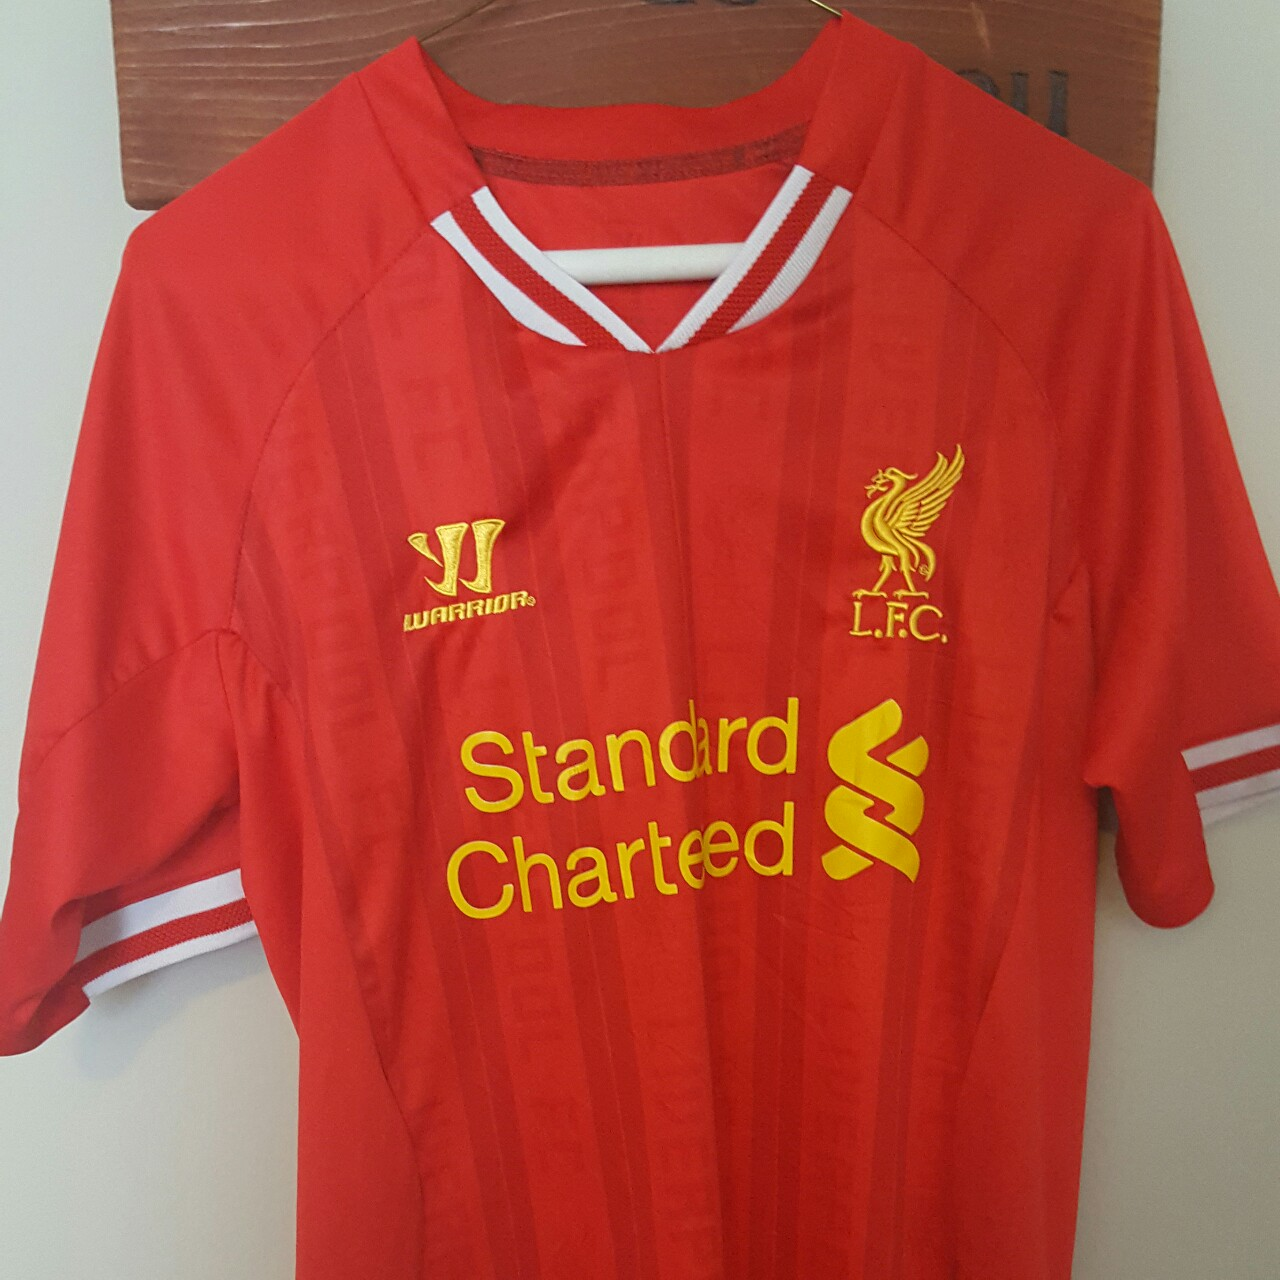 sports shoes cacfc f5f98 Warrior Liverpool Standard Chartered Jersey Size... - Depop